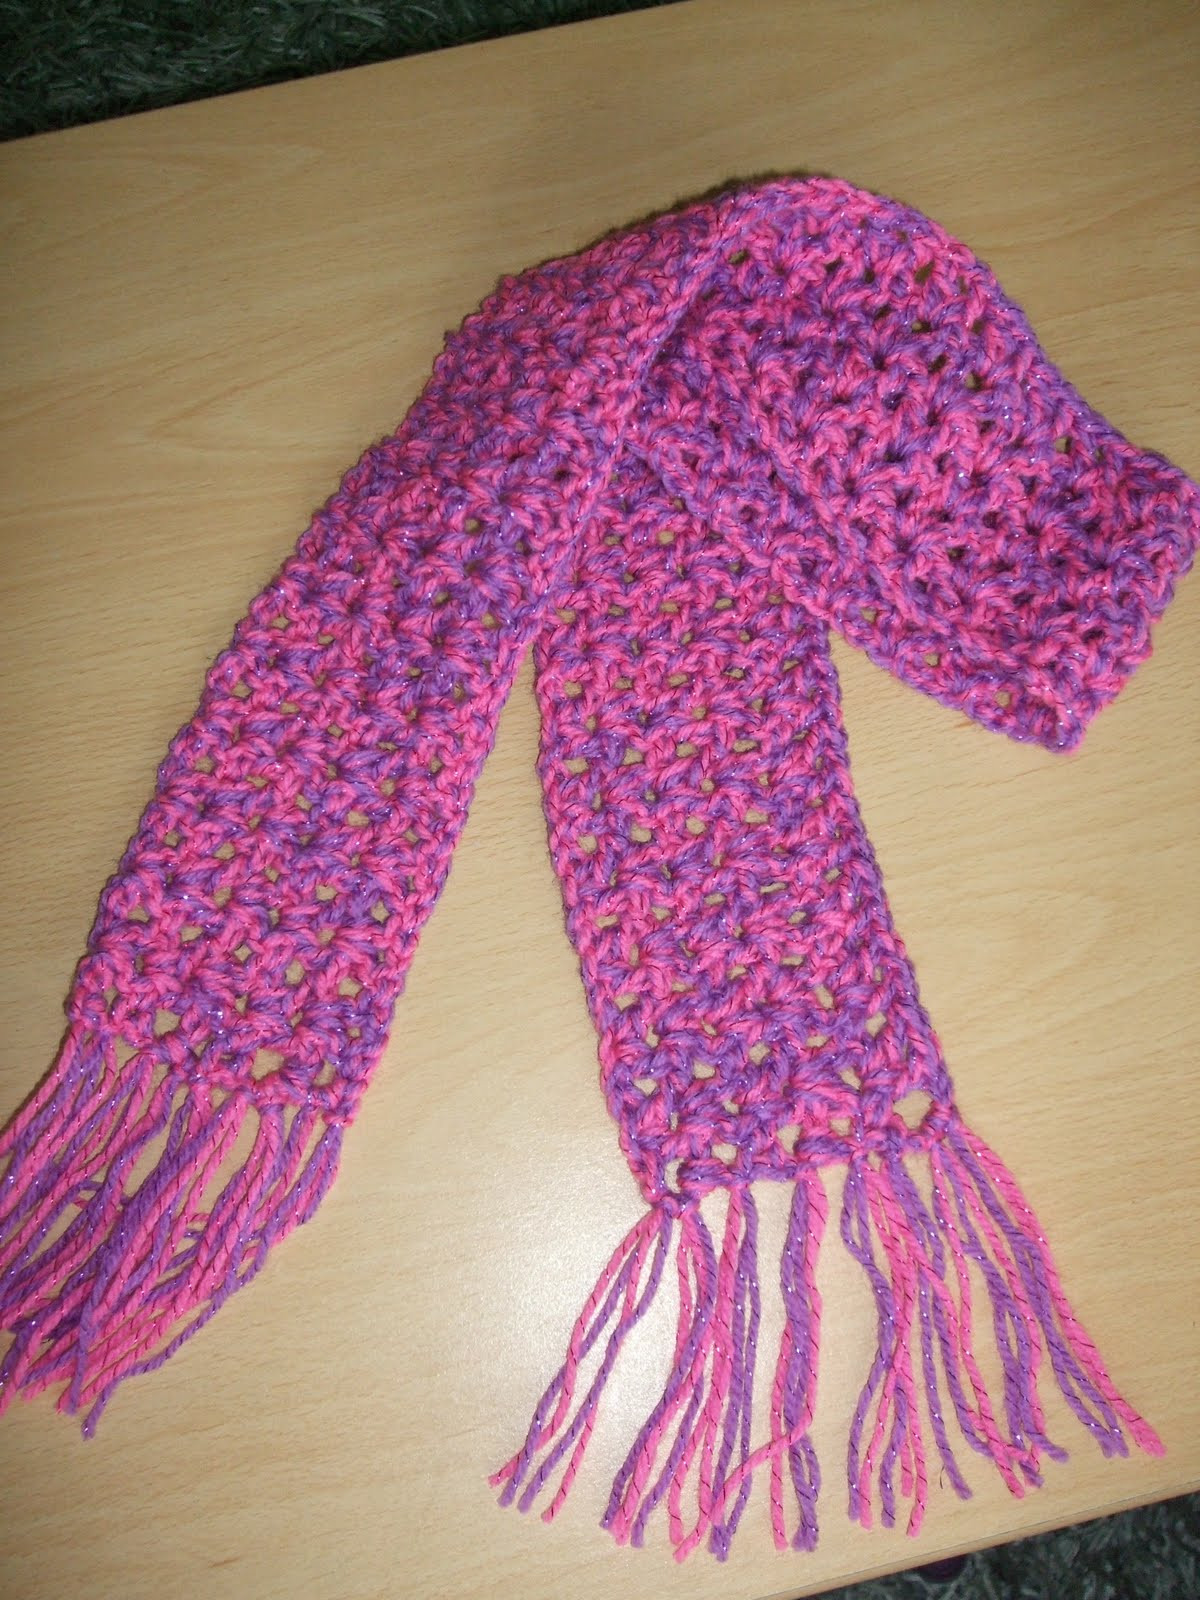 Toddler Scarf New Channelle S Crochet Creations toddlers Scarf Of Attractive 43 Pics toddler Scarf